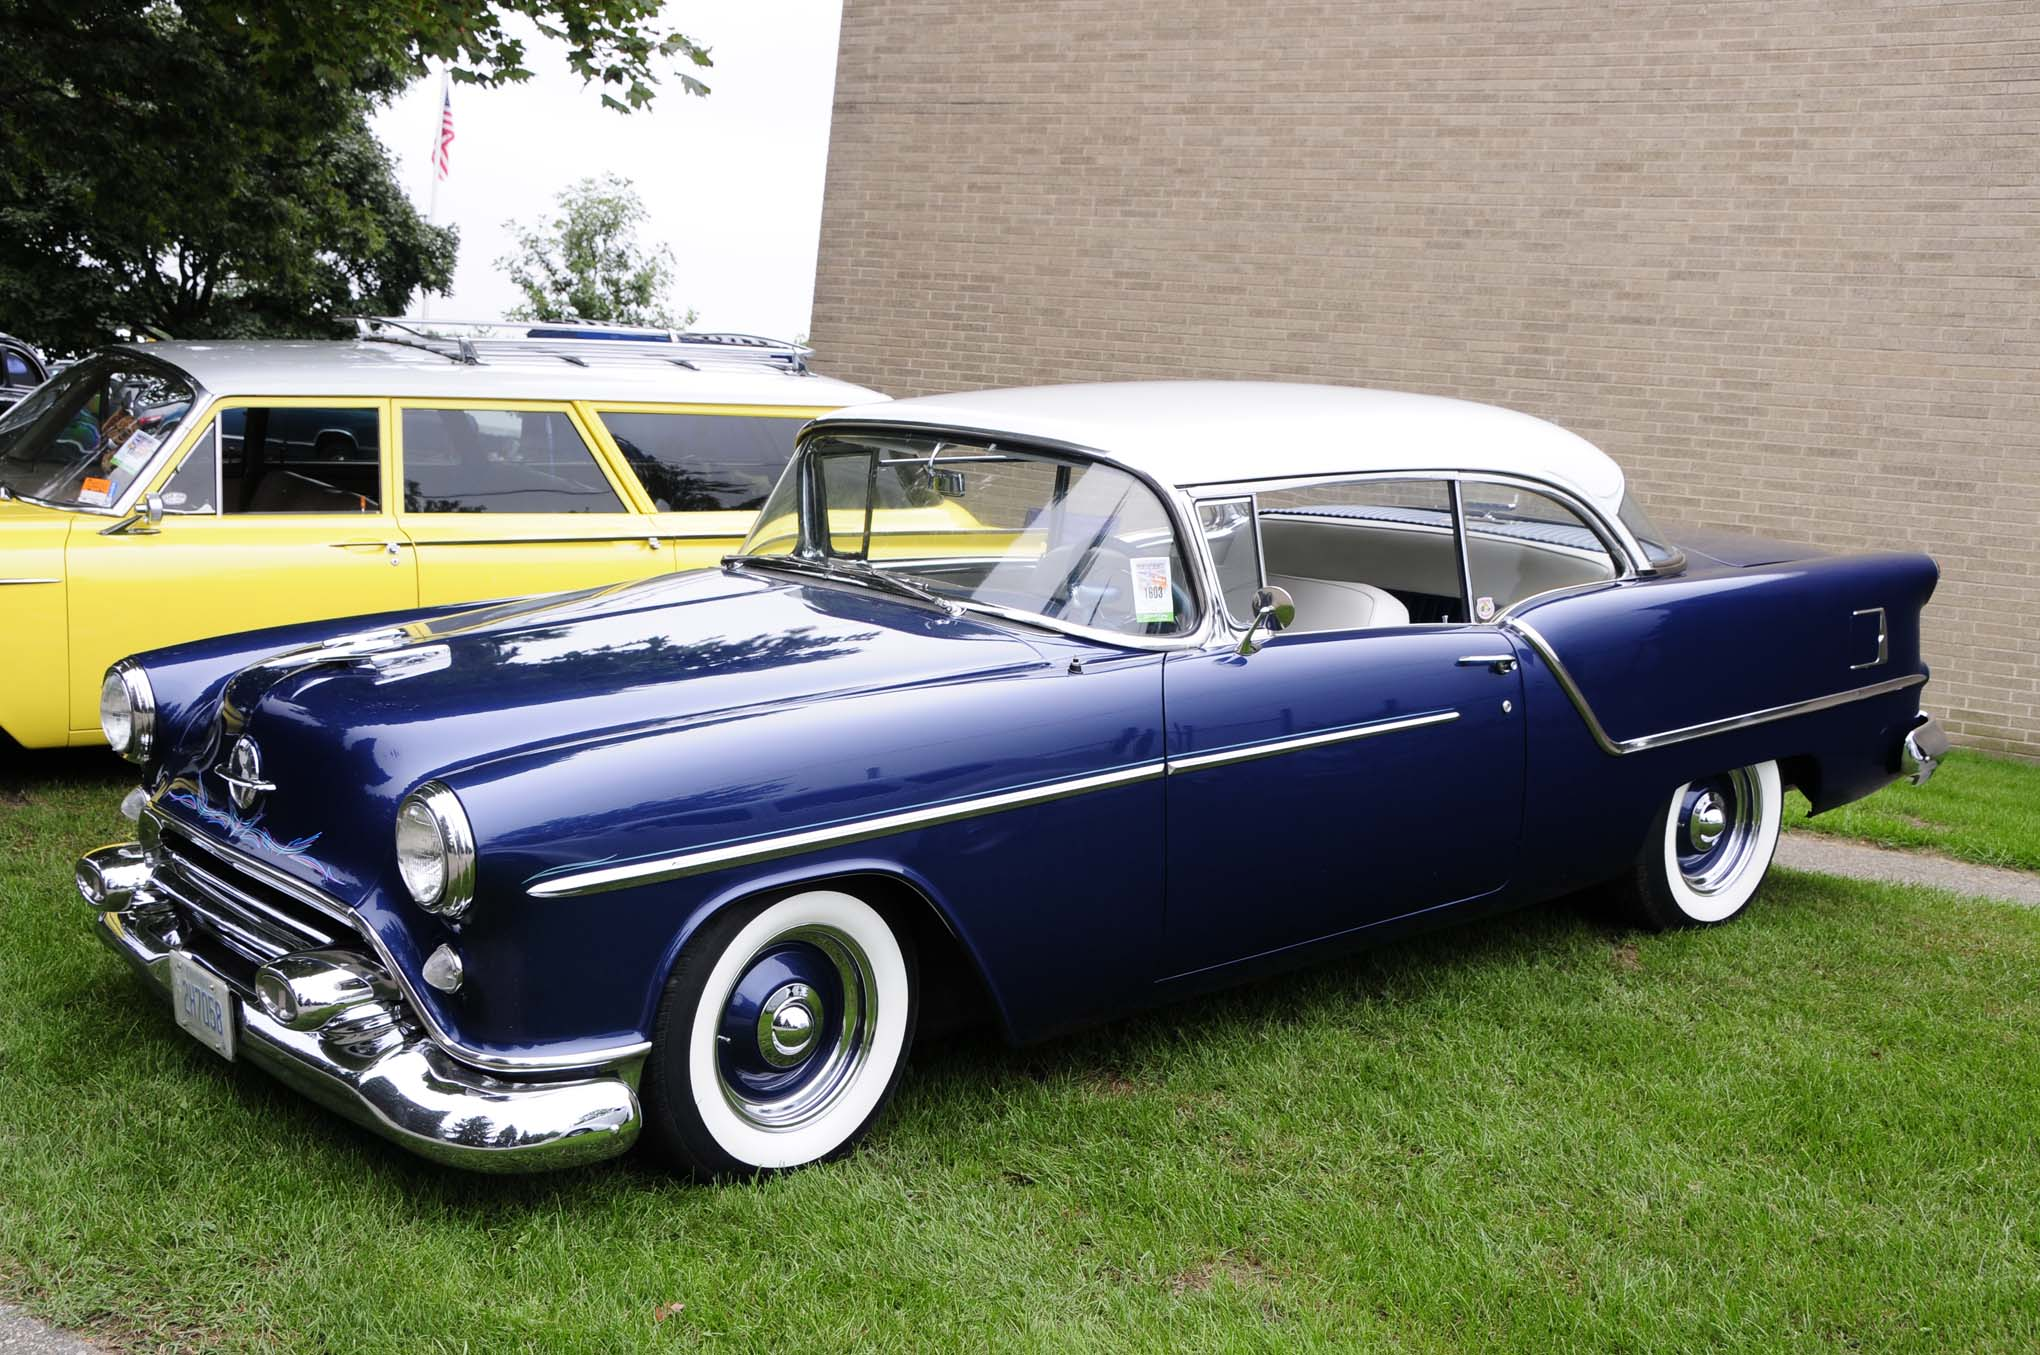 Nothing cruises better than a mild custom like this subtle 1954 Oldsmobile owned by Ray Jervis with its lowered stance, deep blue gloss, and steelies with wide whites.